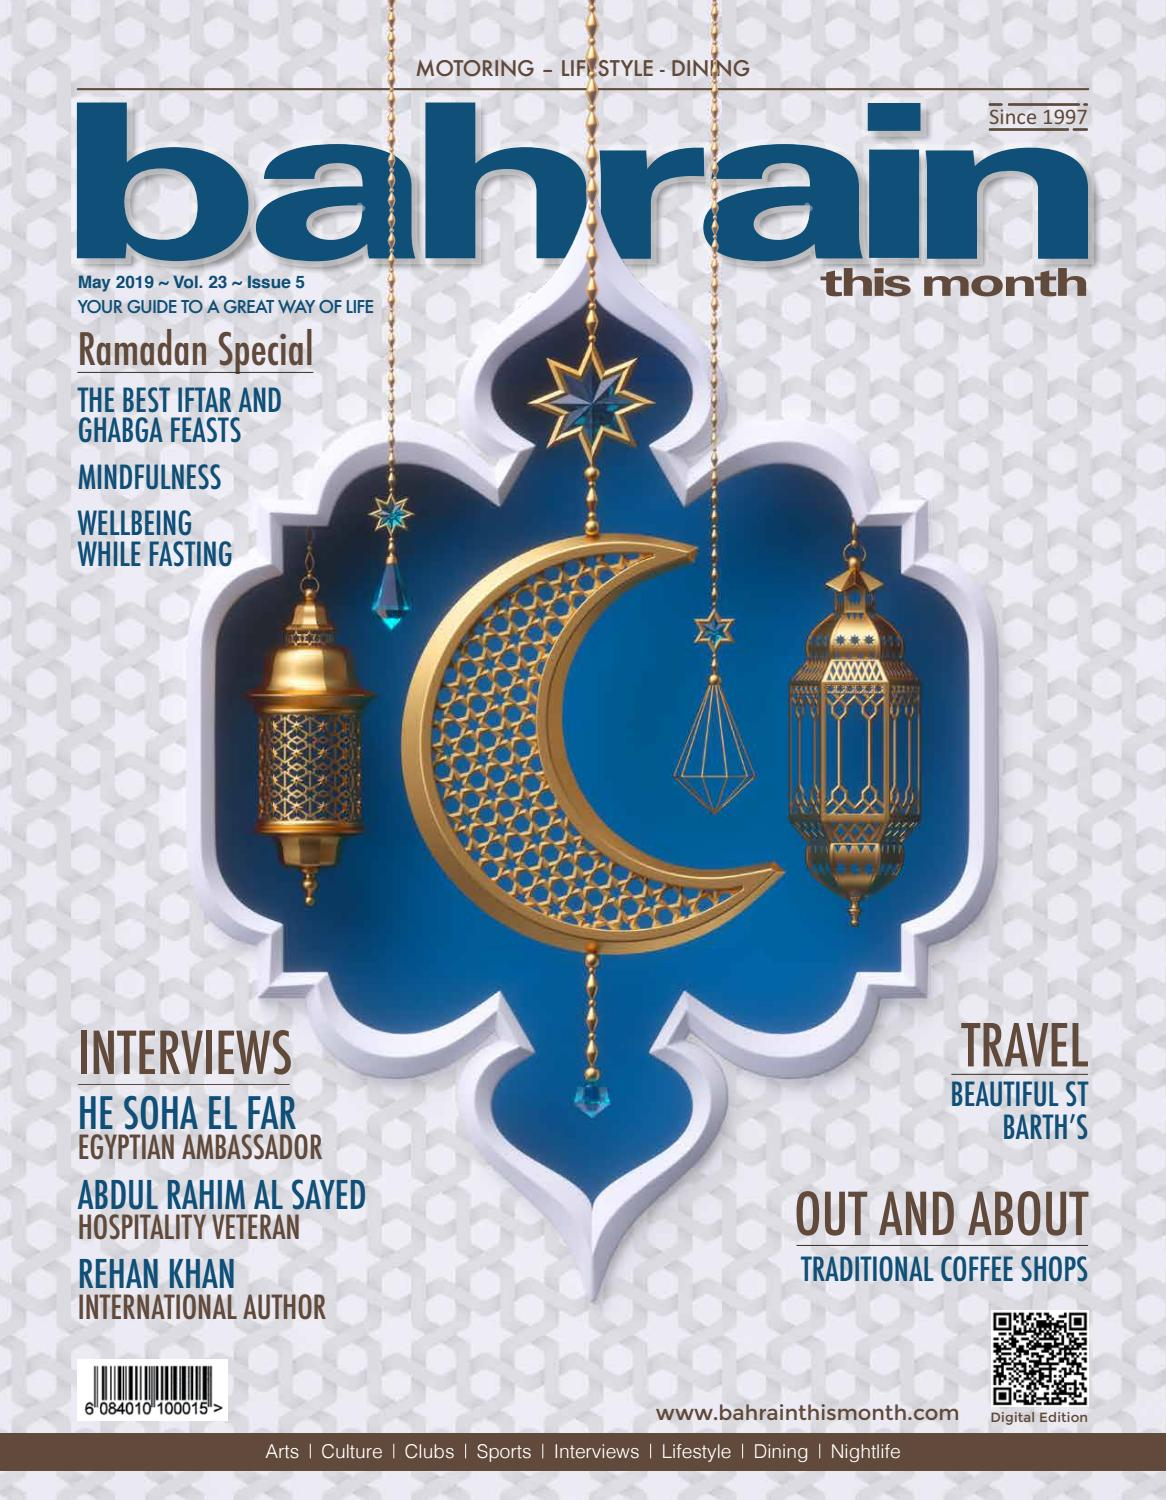 Bahrain This Month - May 2019 by Red House Marketing - issuu